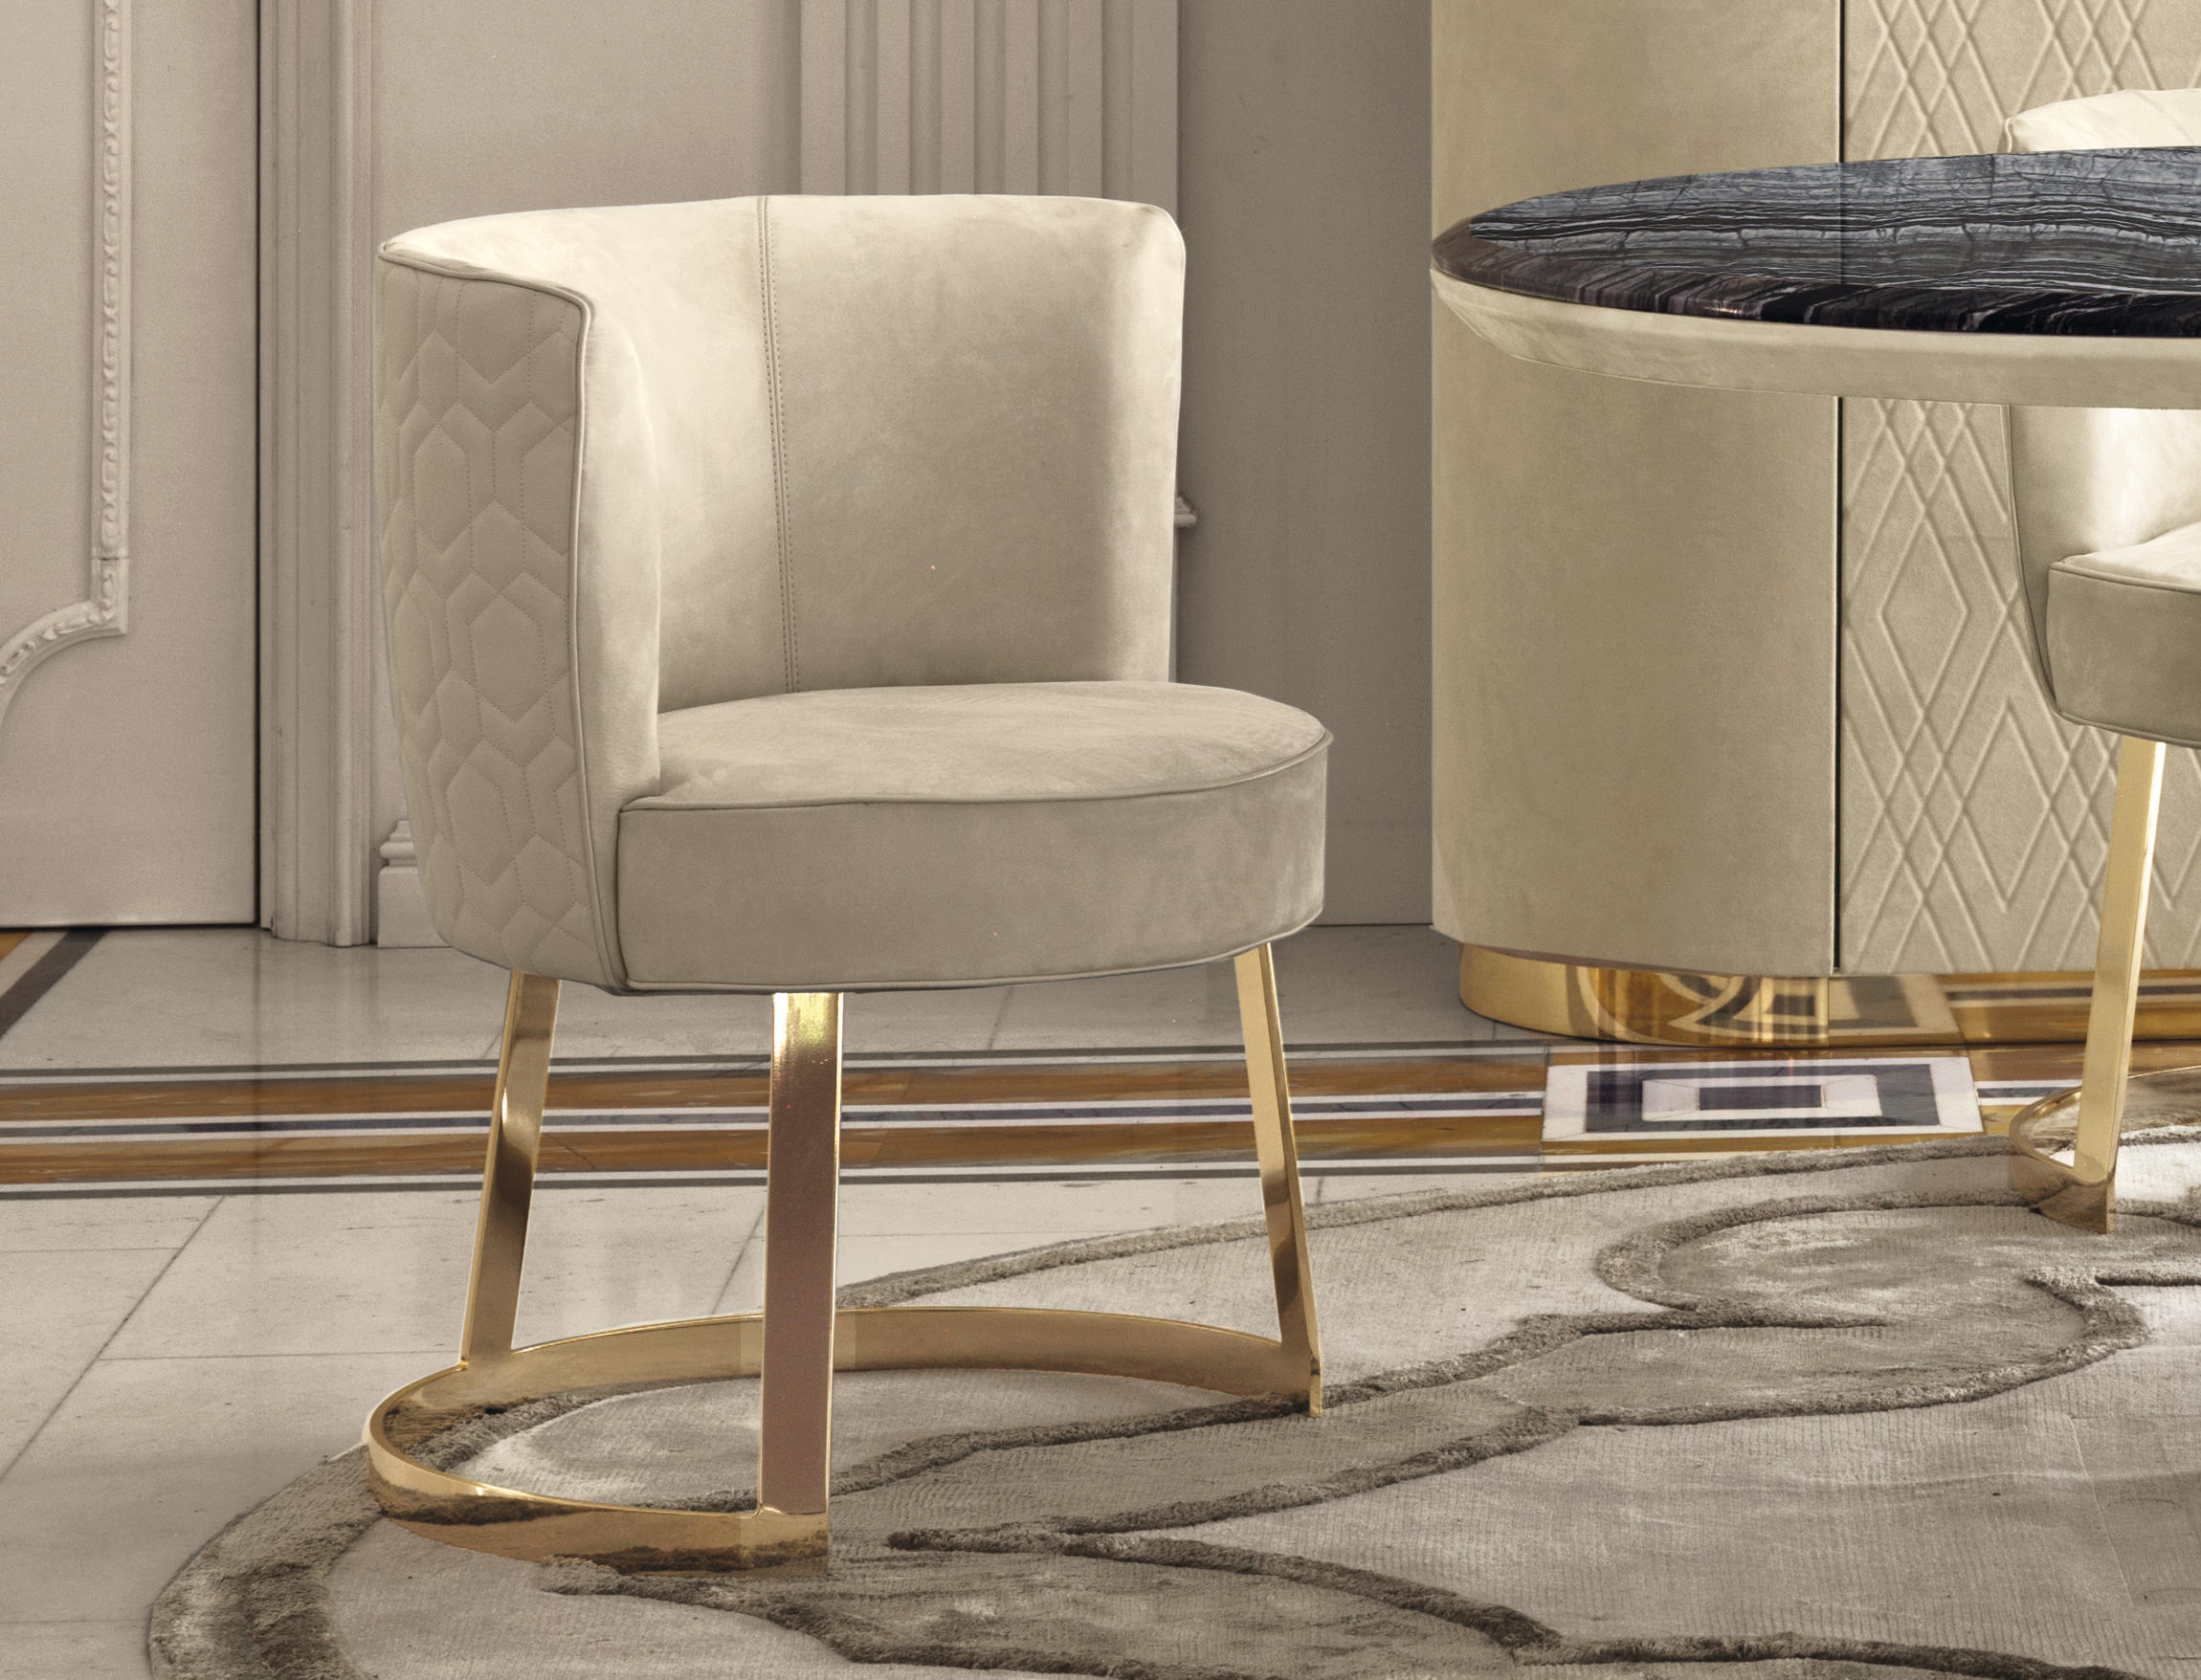 Clo 201 Chairs From Longhi S P A Architonic